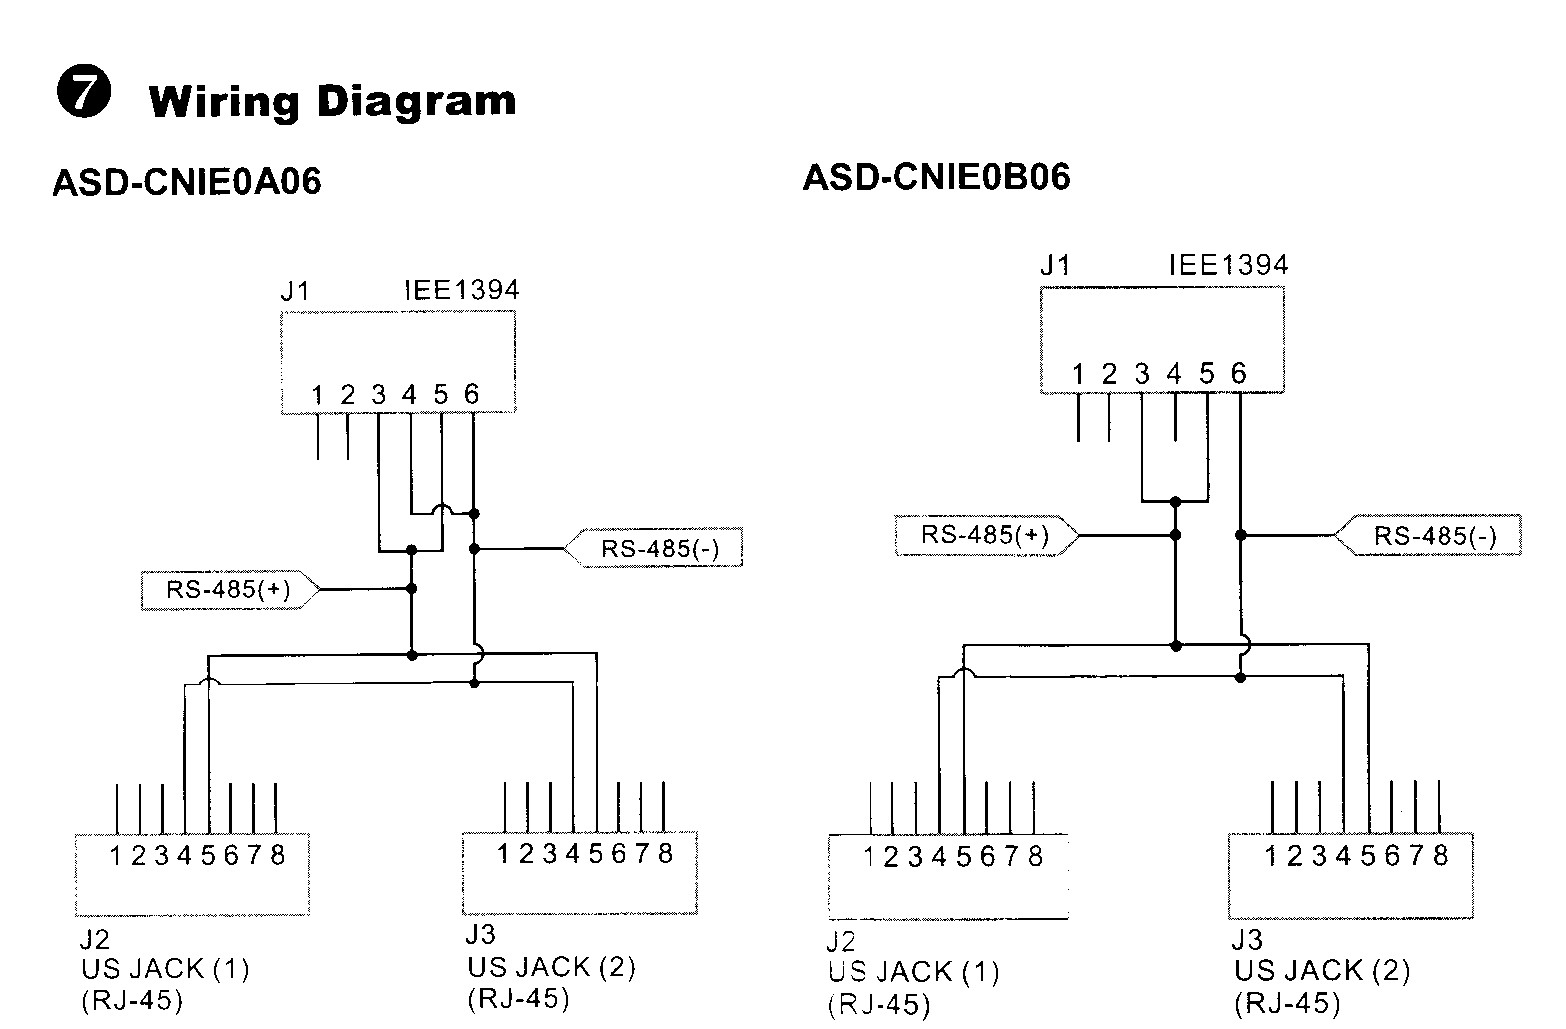 rs485 2 wire connection diagram air conditioner container asda a2 rs 485 communication configuration